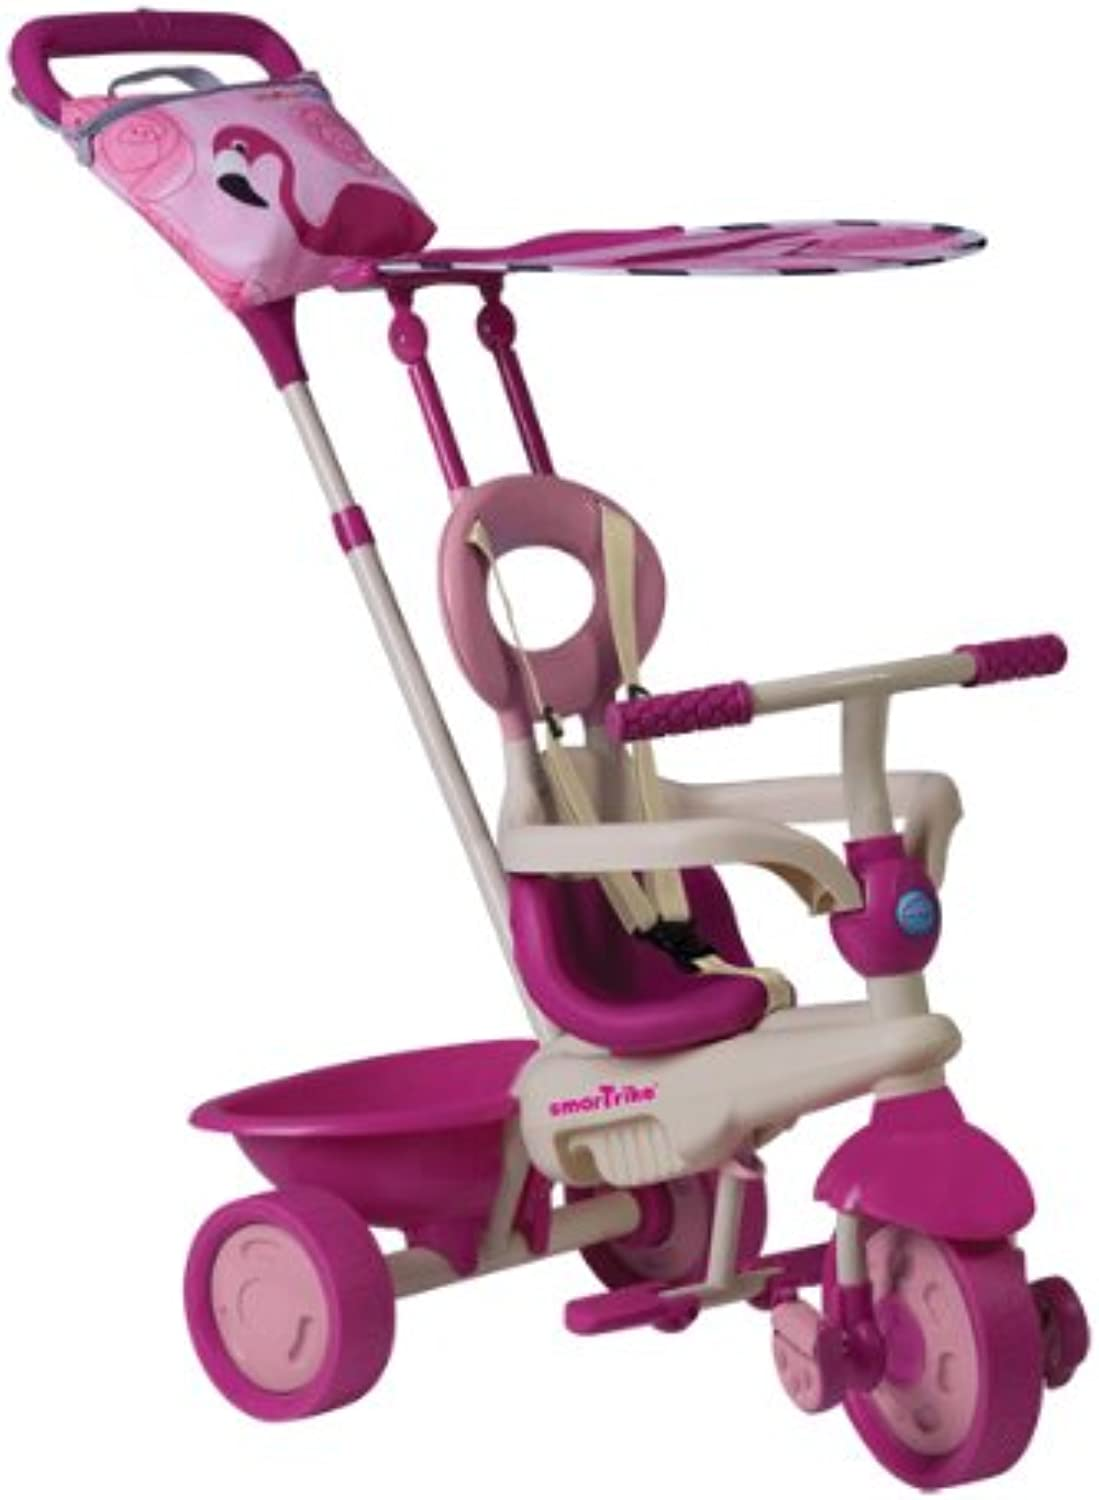 Smartrike Safari Tricycle Touch Steering Pink   White